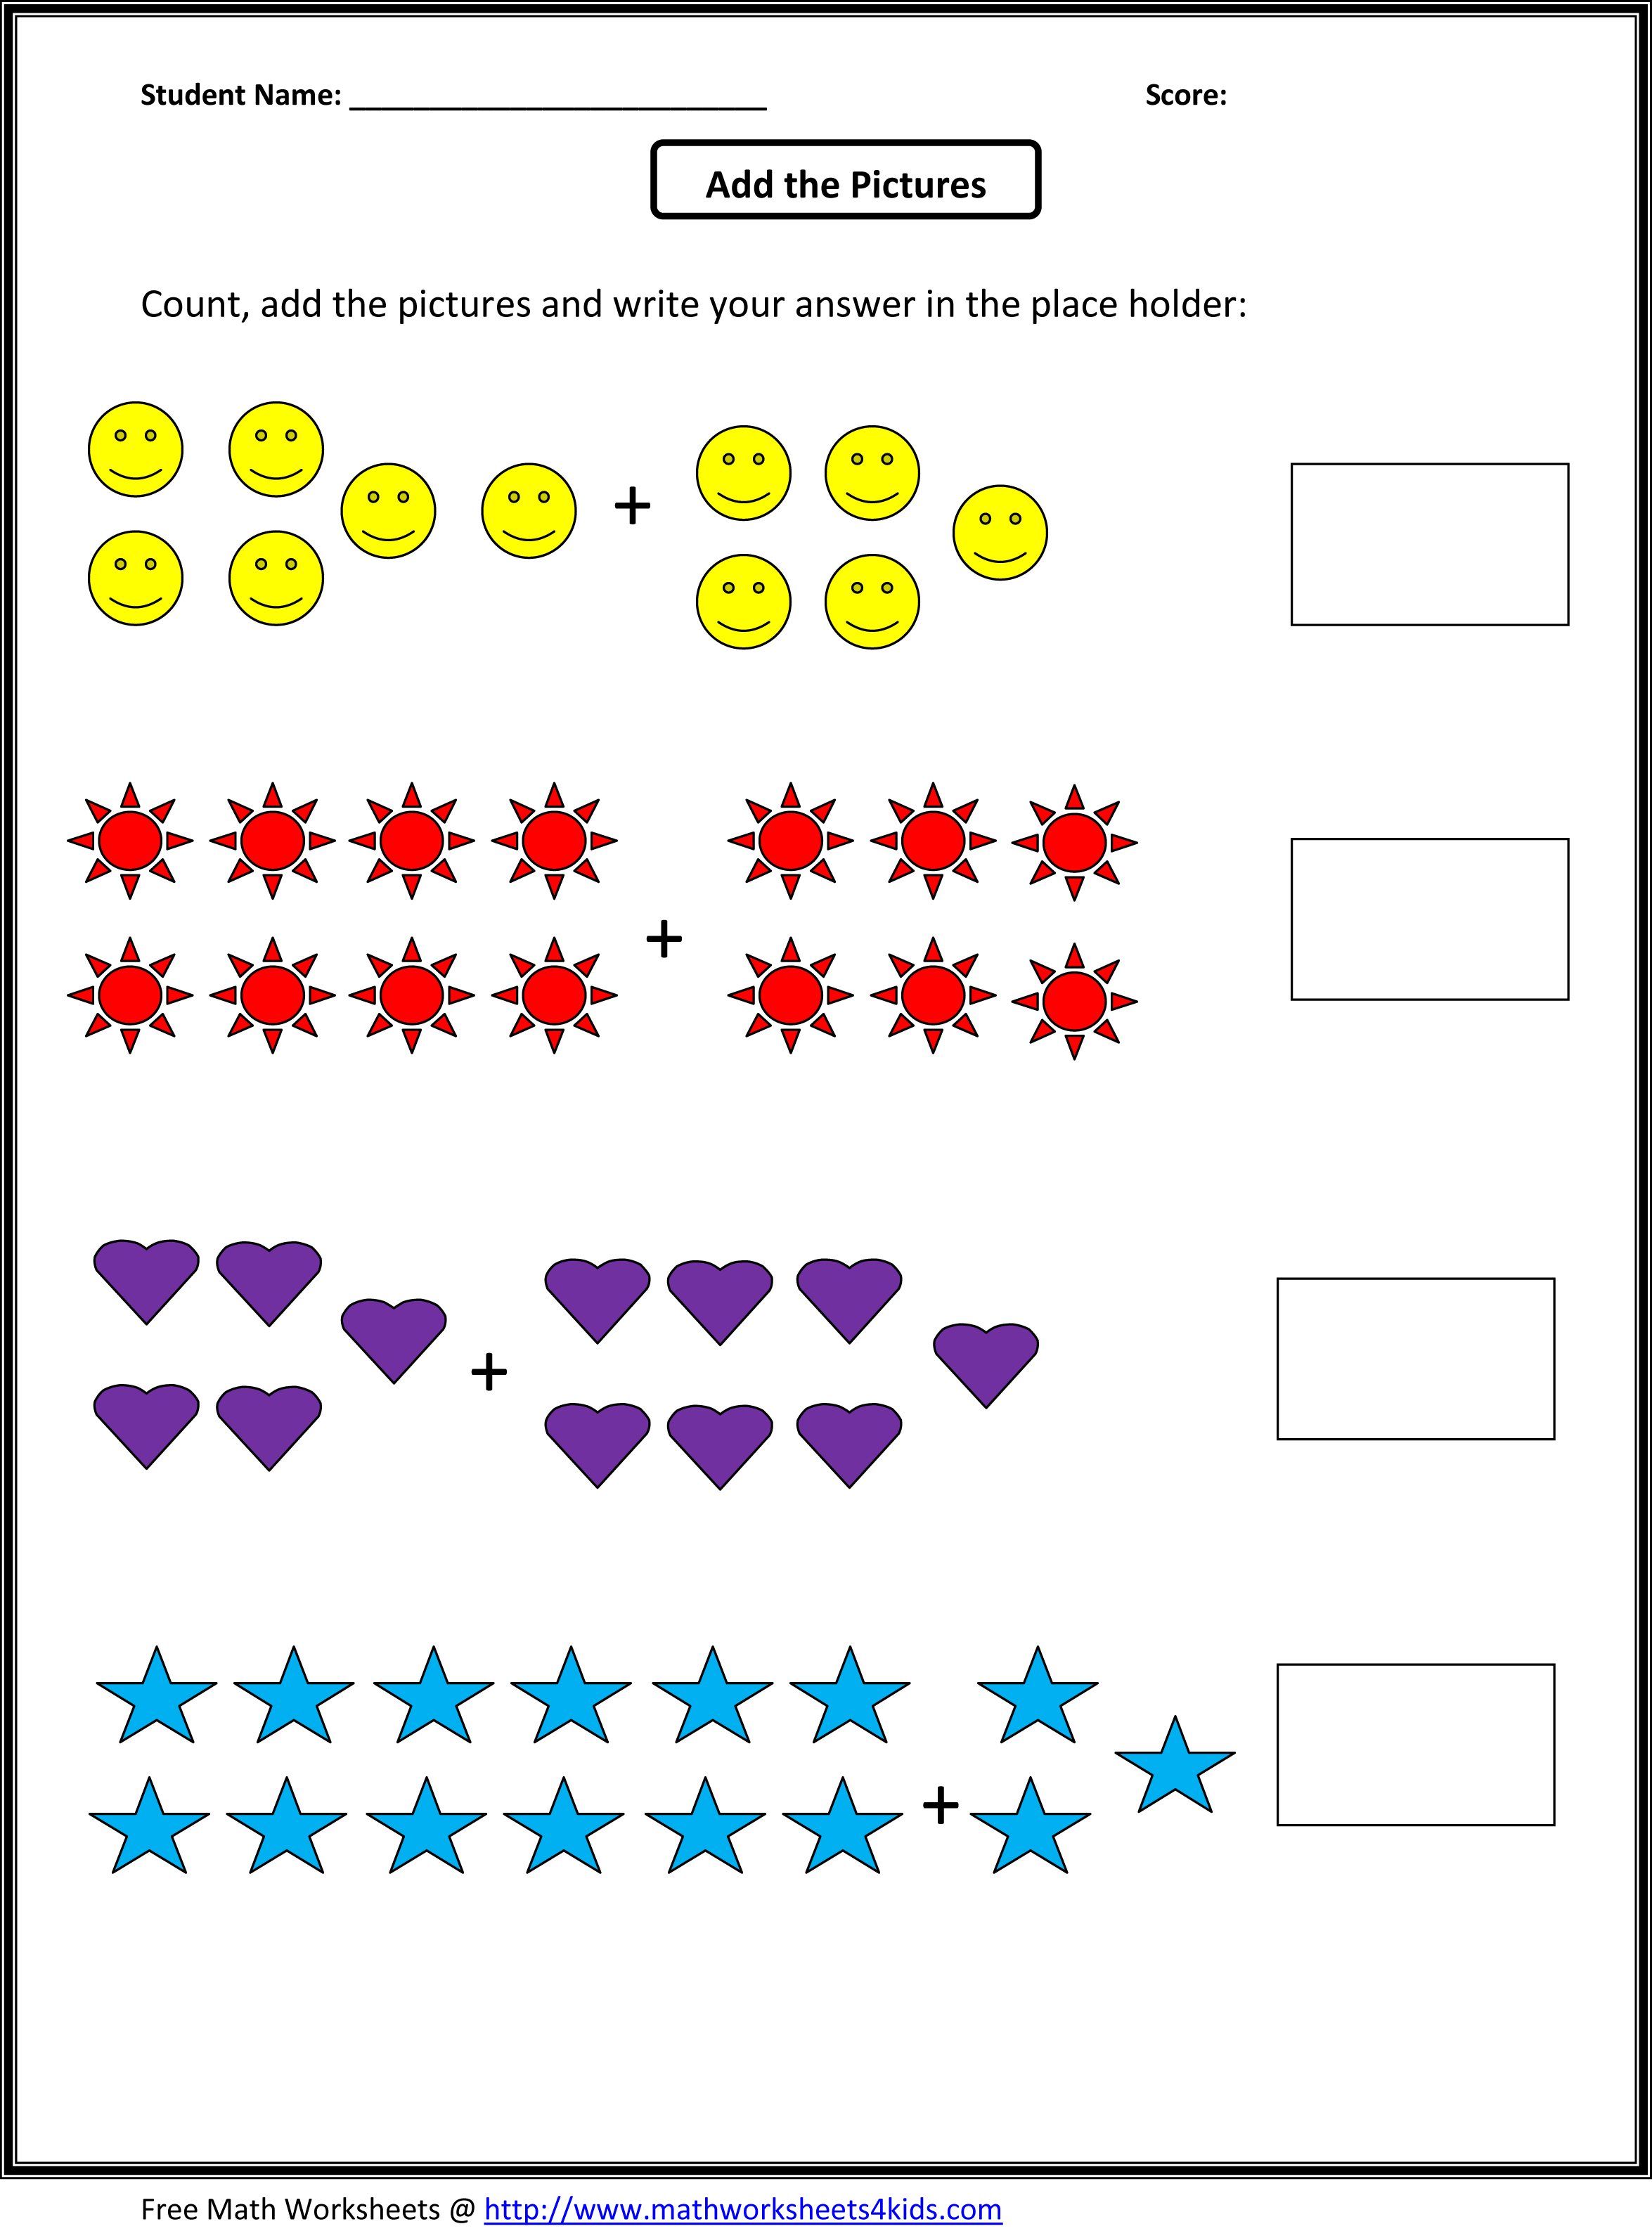 Weirdmailus  Outstanding Grade  Maths Worksheet  Reocurent With Handsome Math Worksheets For St Grade Free  Reocurent With Nice Homonyms Worksheets For Grade  Also Bbc Bitesize Ks Maths Worksheets In Addition Creating A Worksheet In Excel And Maths Ratios Worksheets As Well As Reading Comprehension Grade  Worksheets Additionally Equal Not Equal Worksheets From Reocurentcom With Weirdmailus  Handsome Grade  Maths Worksheet  Reocurent With Nice Math Worksheets For St Grade Free  Reocurent And Outstanding Homonyms Worksheets For Grade  Also Bbc Bitesize Ks Maths Worksheets In Addition Creating A Worksheet In Excel From Reocurentcom